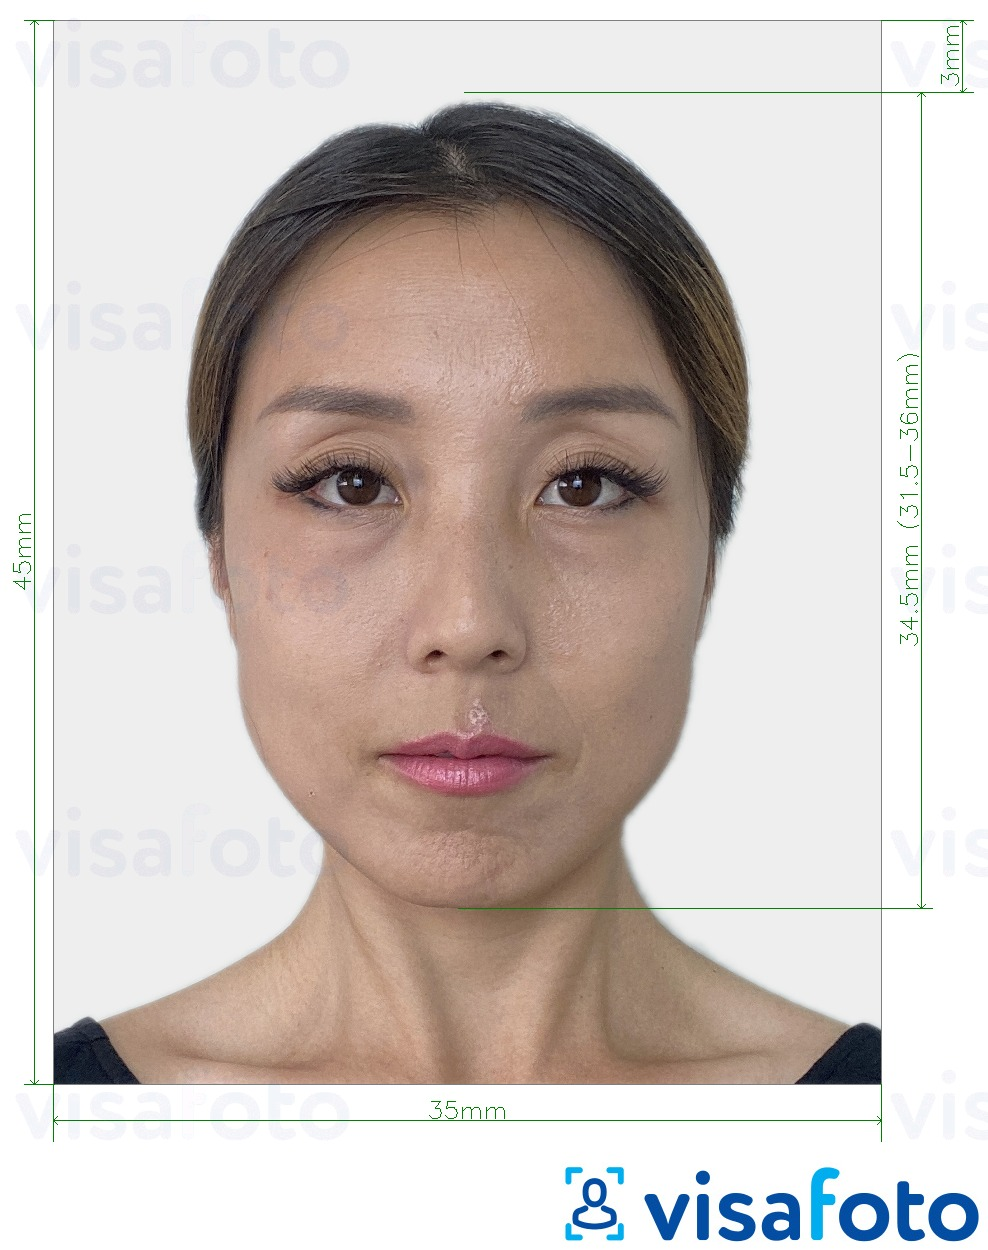 Example of photo for South Korea passport 35x45 mm (3.5x4.5 cm) with exact size specification